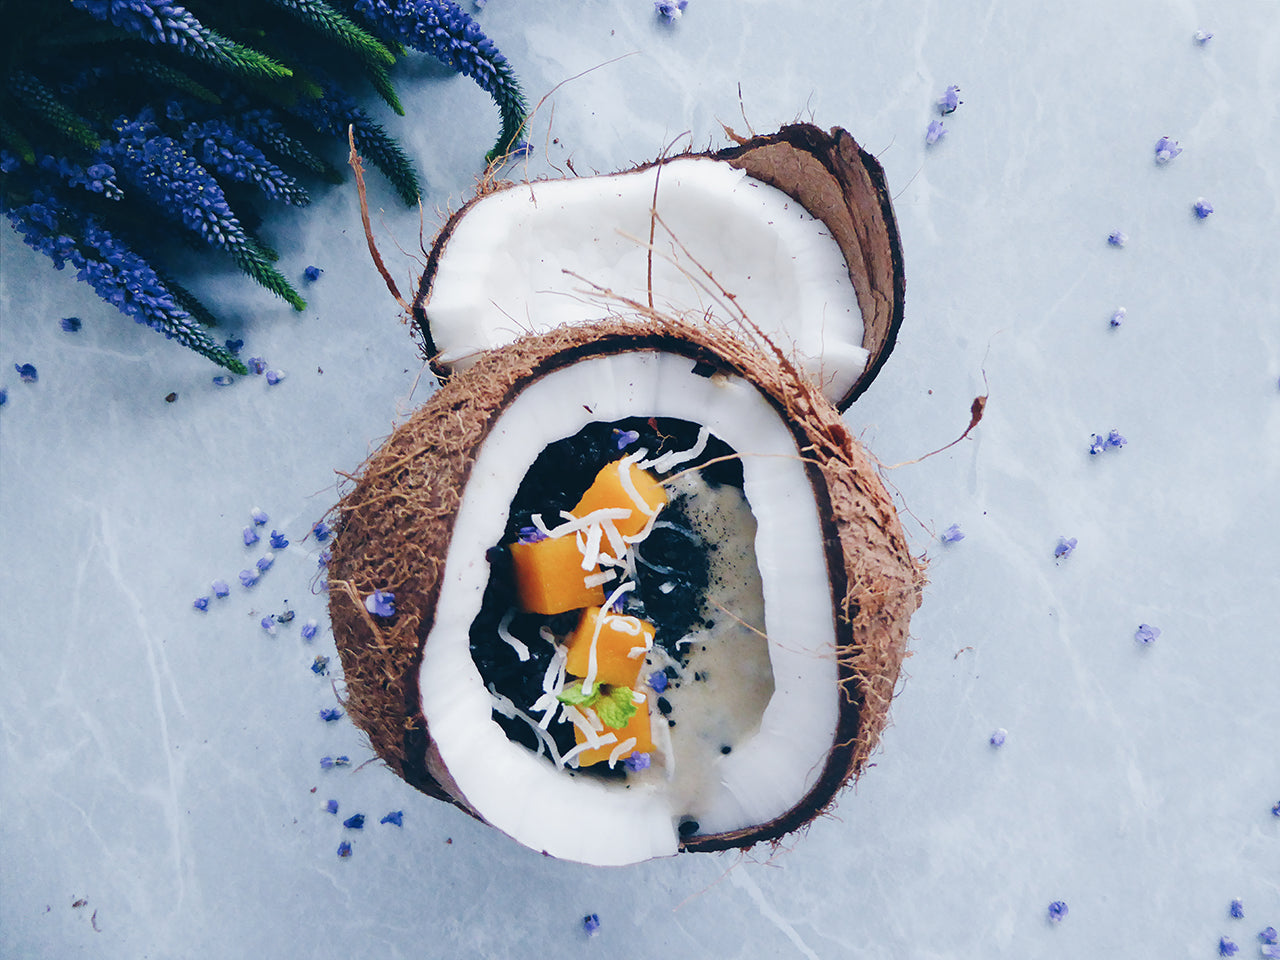 Black Rice with Pandan-Infused Coconut Milk and comme.co Sprinkle by Mandy Banh